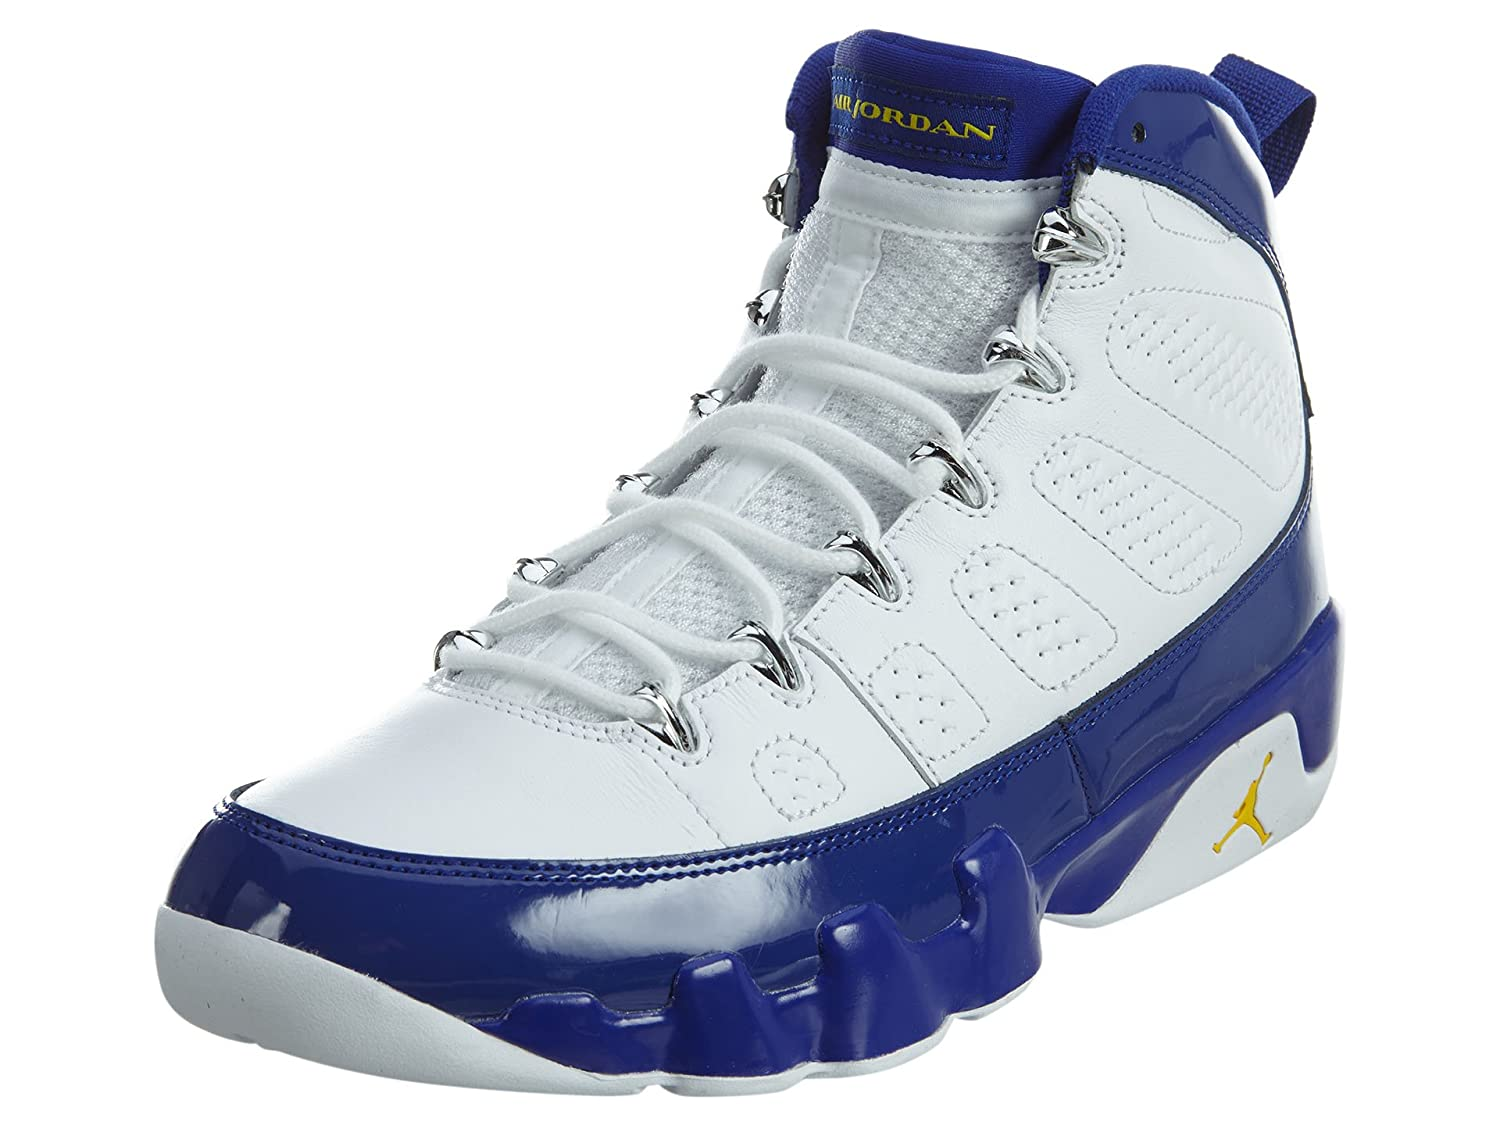 new arrival 19e61 8363e Nike Mens Air Jordan 9 Retro White/Tour Yellow-Concord Leather Size 8